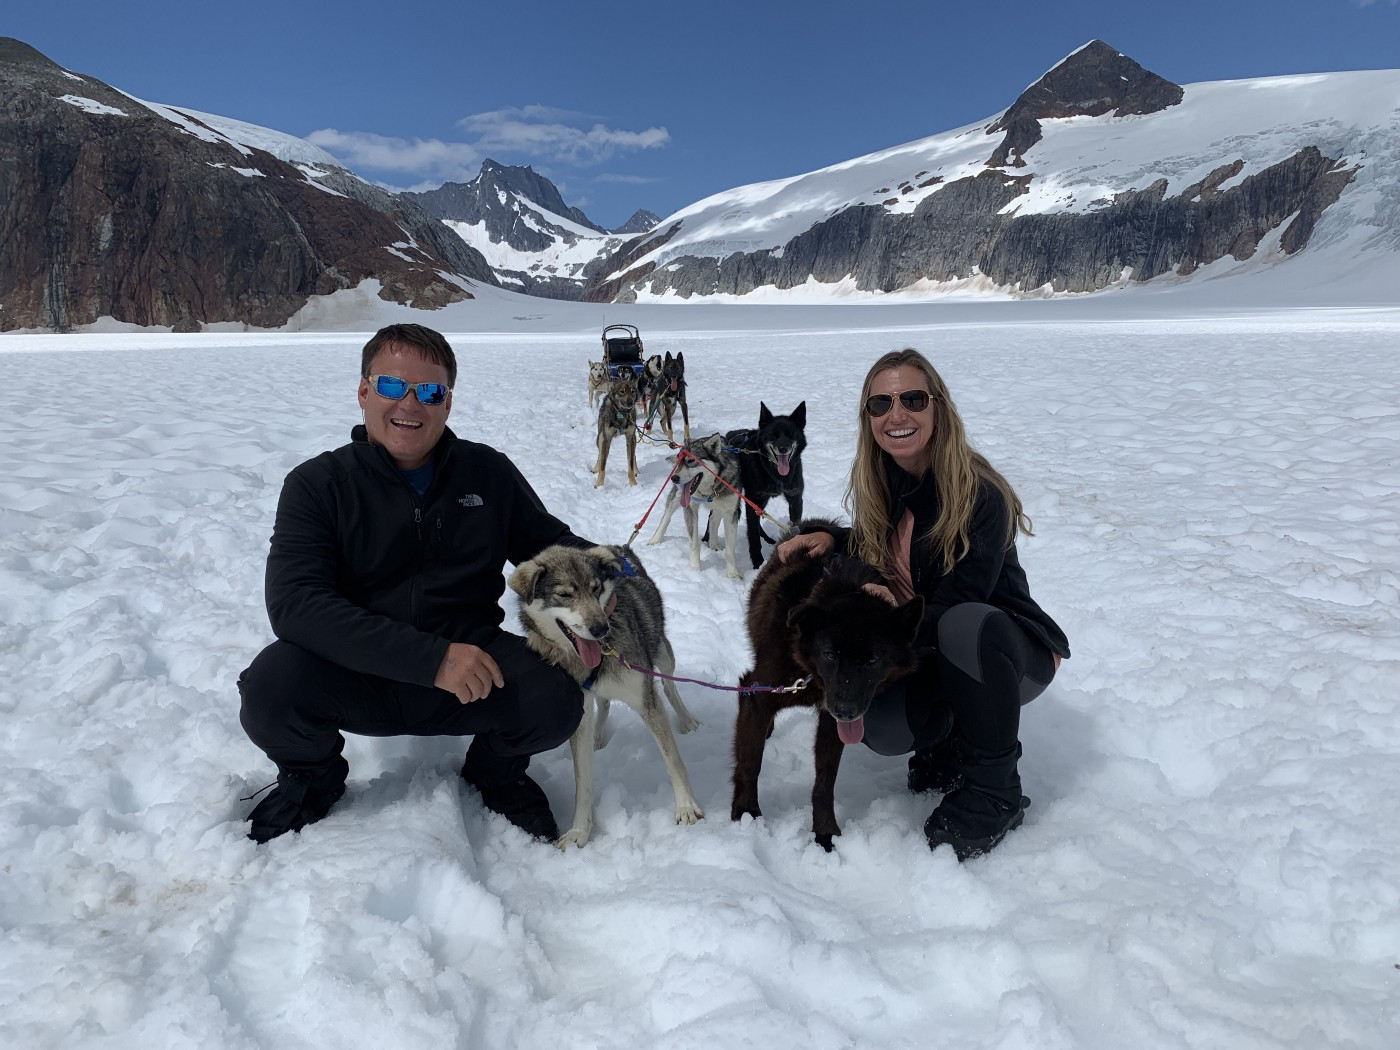 Lisa and Ronnie with sled dogs on Mendenhall Glacier in Juneau Alaska